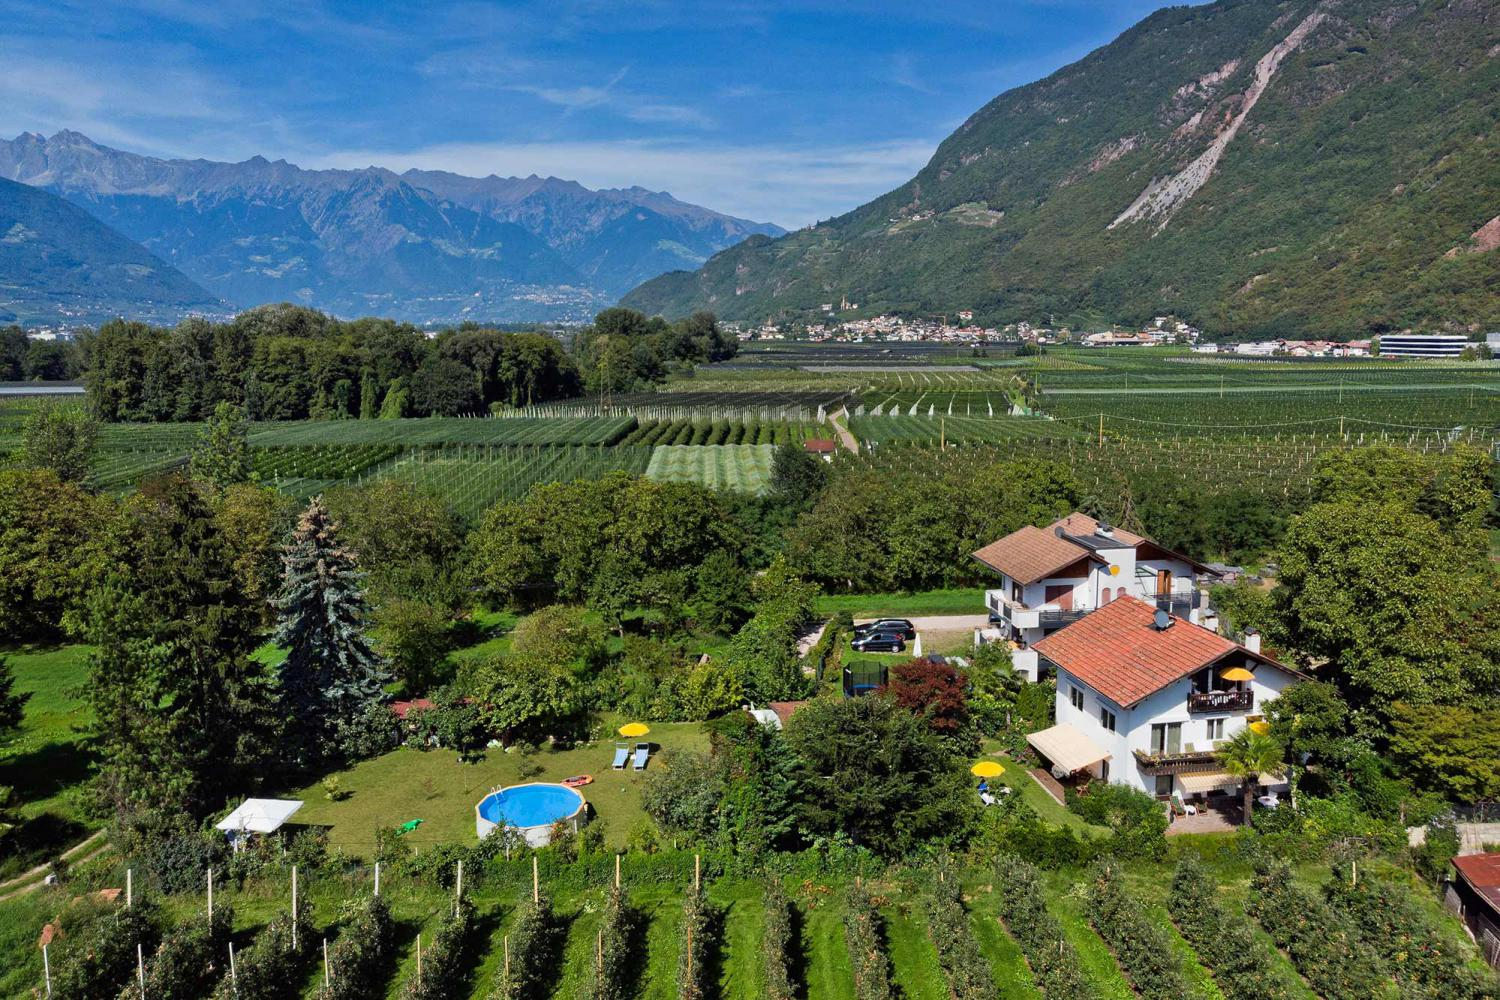 Surrounded by apple trees - Appartements Wiesengrund in Gargazzone